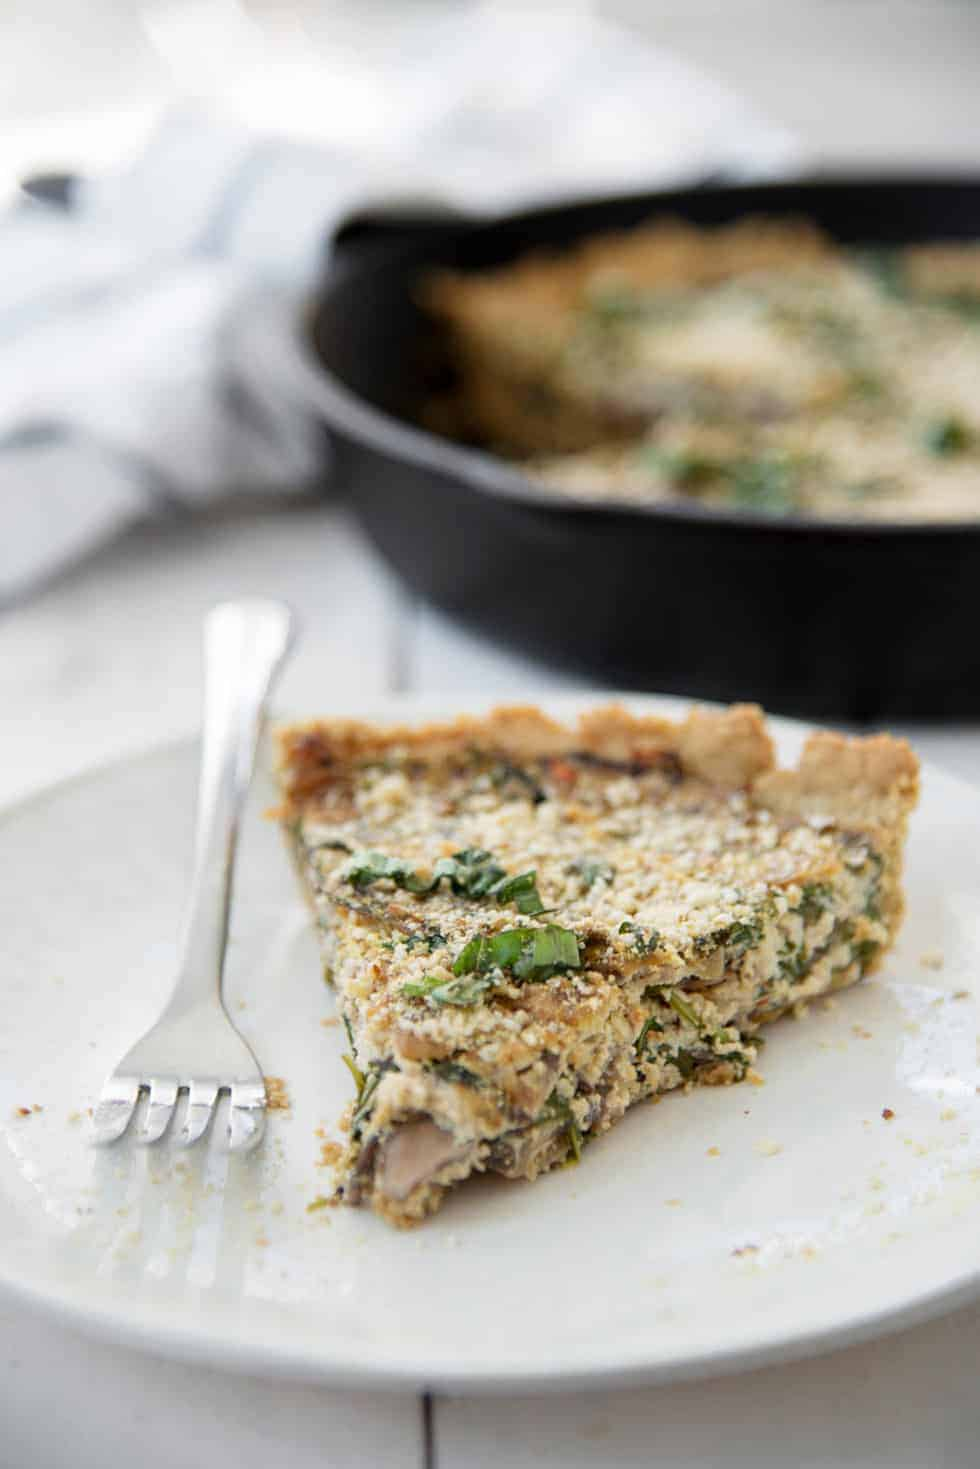 Vegan and Gluten-Free Arugula and Mushroom Quiche! Oat crust topped with mushroom and arugula tofu filling. Hearty meal, perfect for brunch, breakfast or dinner. | www.delishknowledge.com